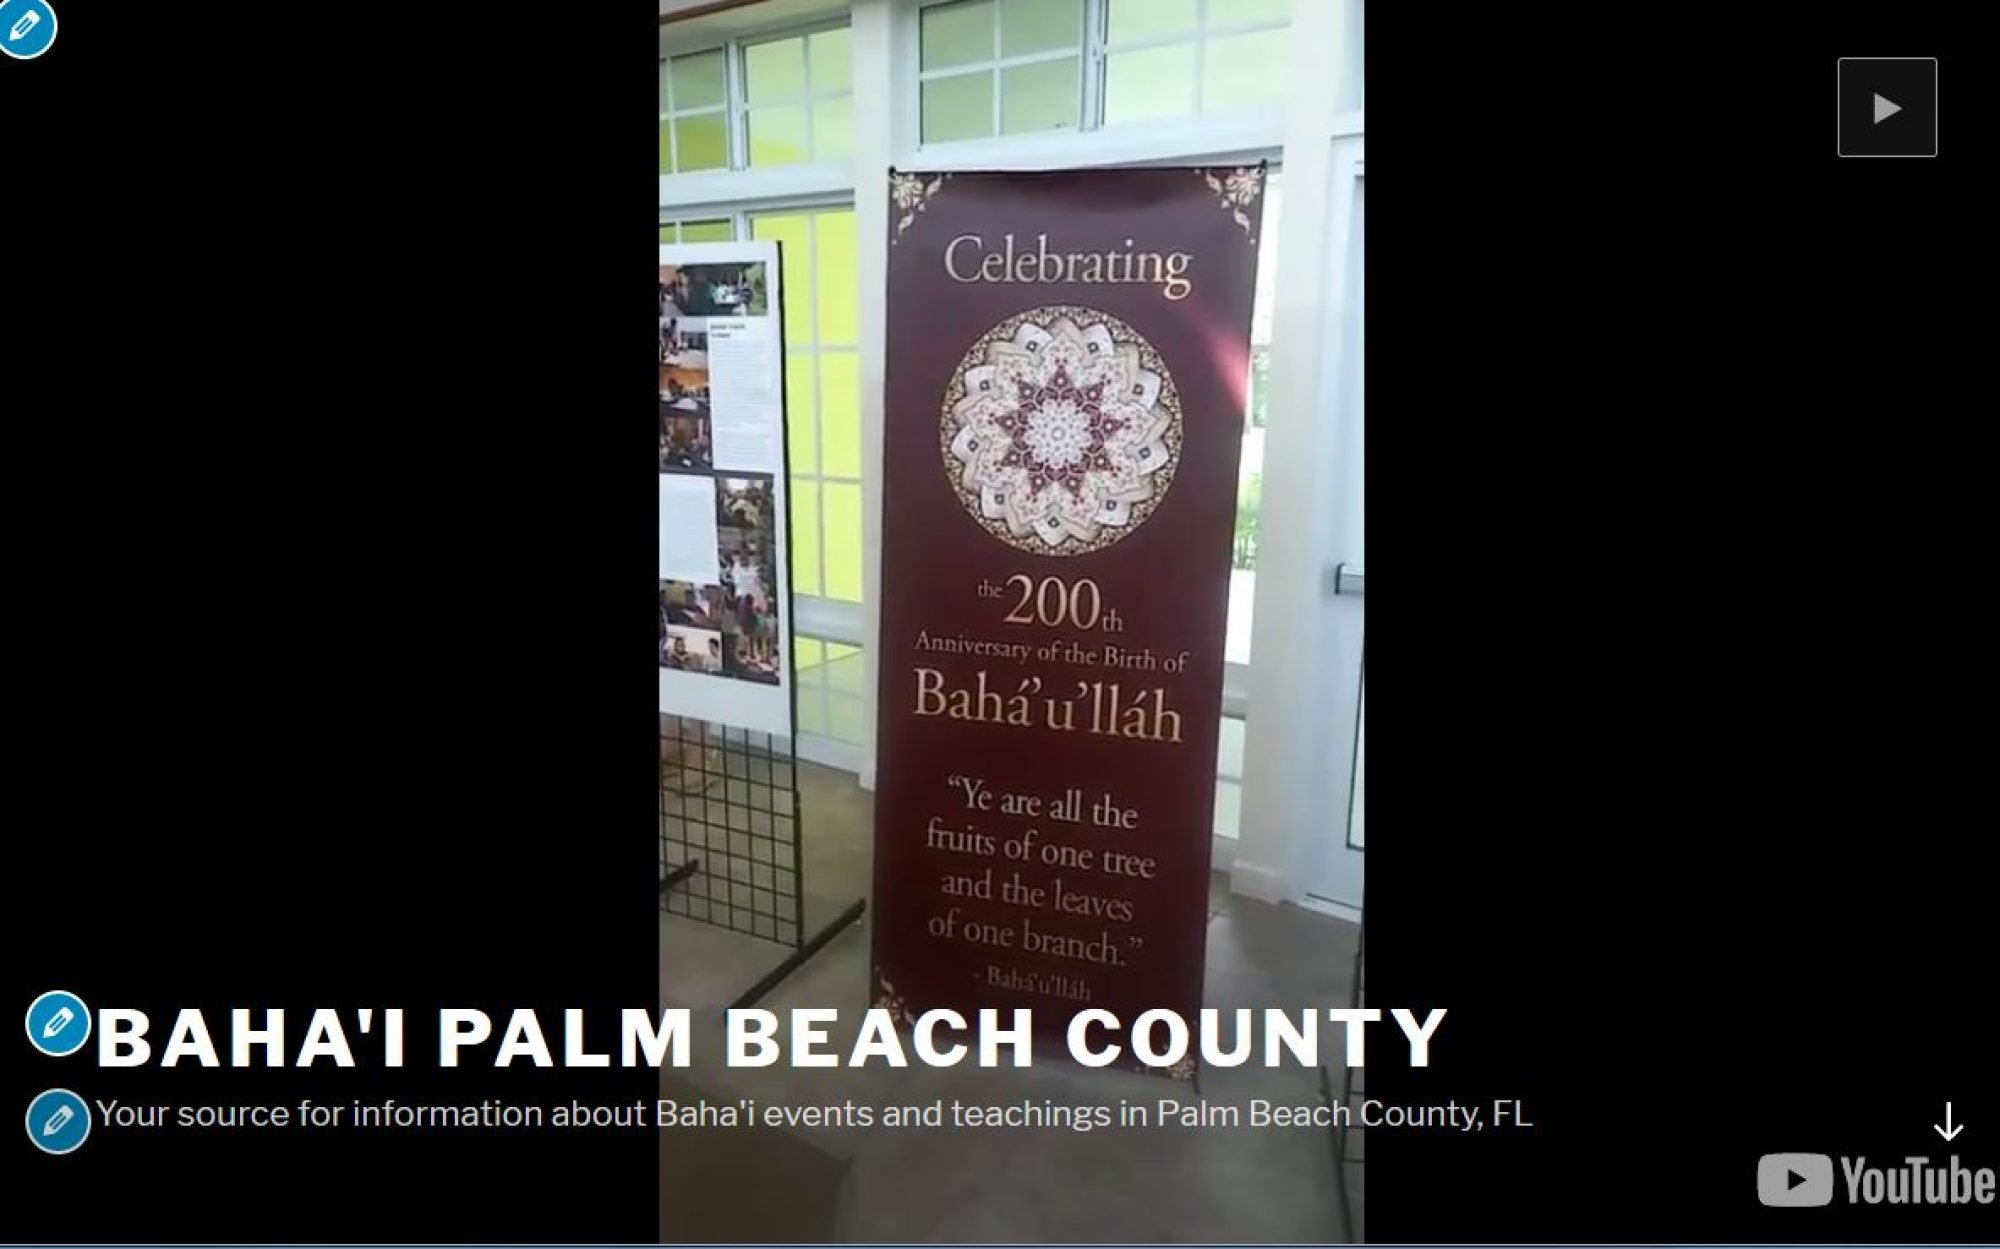 Baha'i Palm Beach county